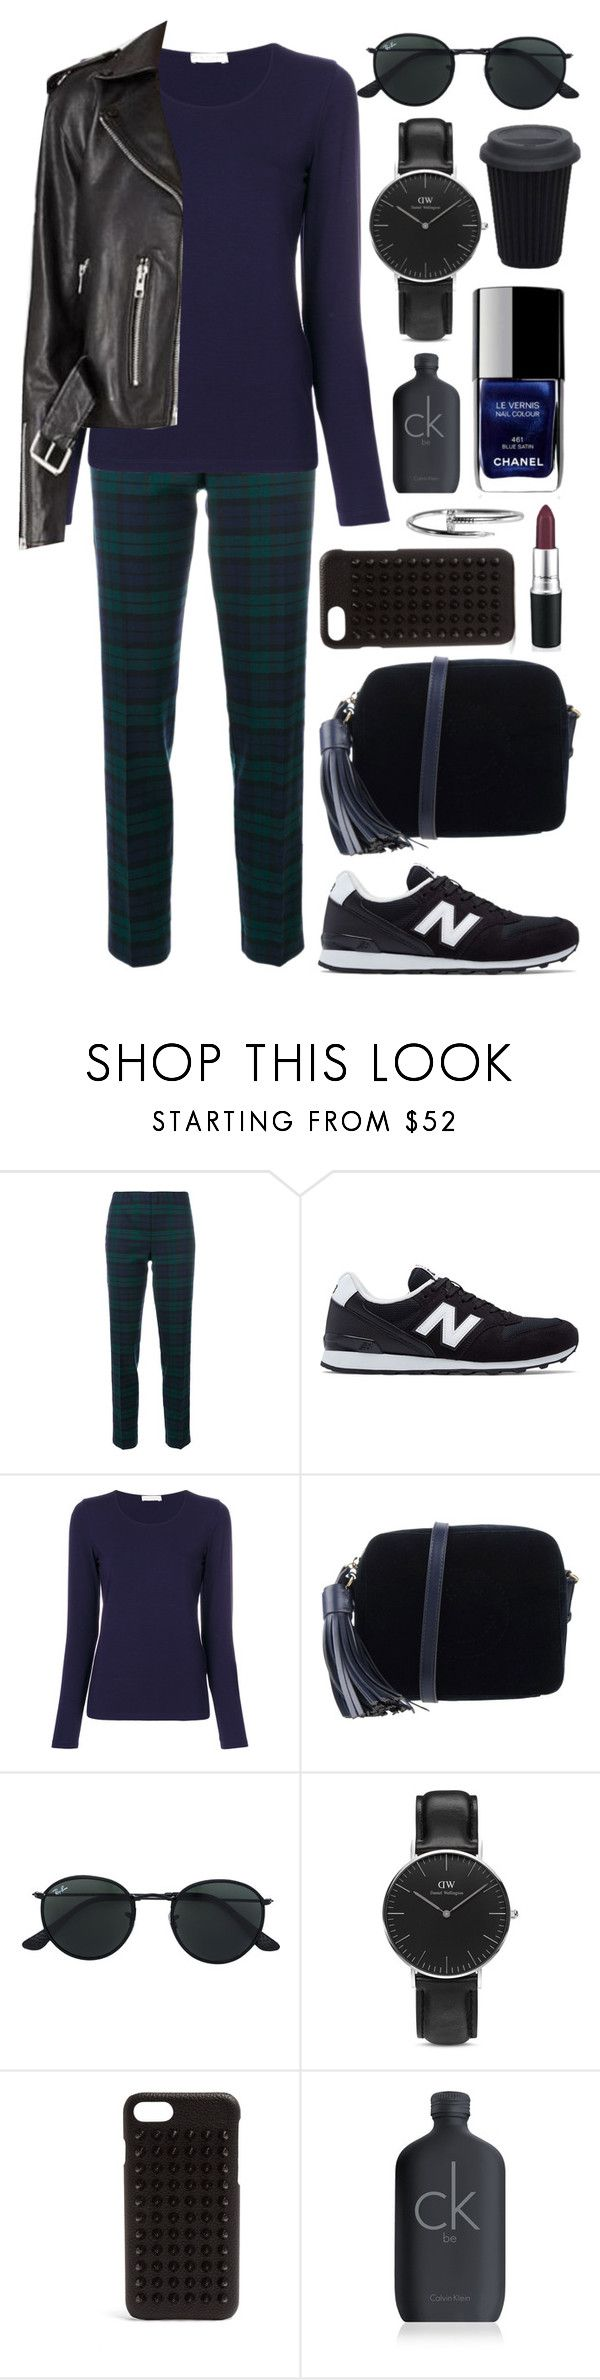 """Untitled #988"" by clary94 ❤ liked on Polyvore featuring P.A.R.O.S.H., New Balance, Le Tricot Perugia, Anya Hindmarch, Ray-Ban, Daniel Wellington, Chanel, Christian Louboutin and Calvin Klein"